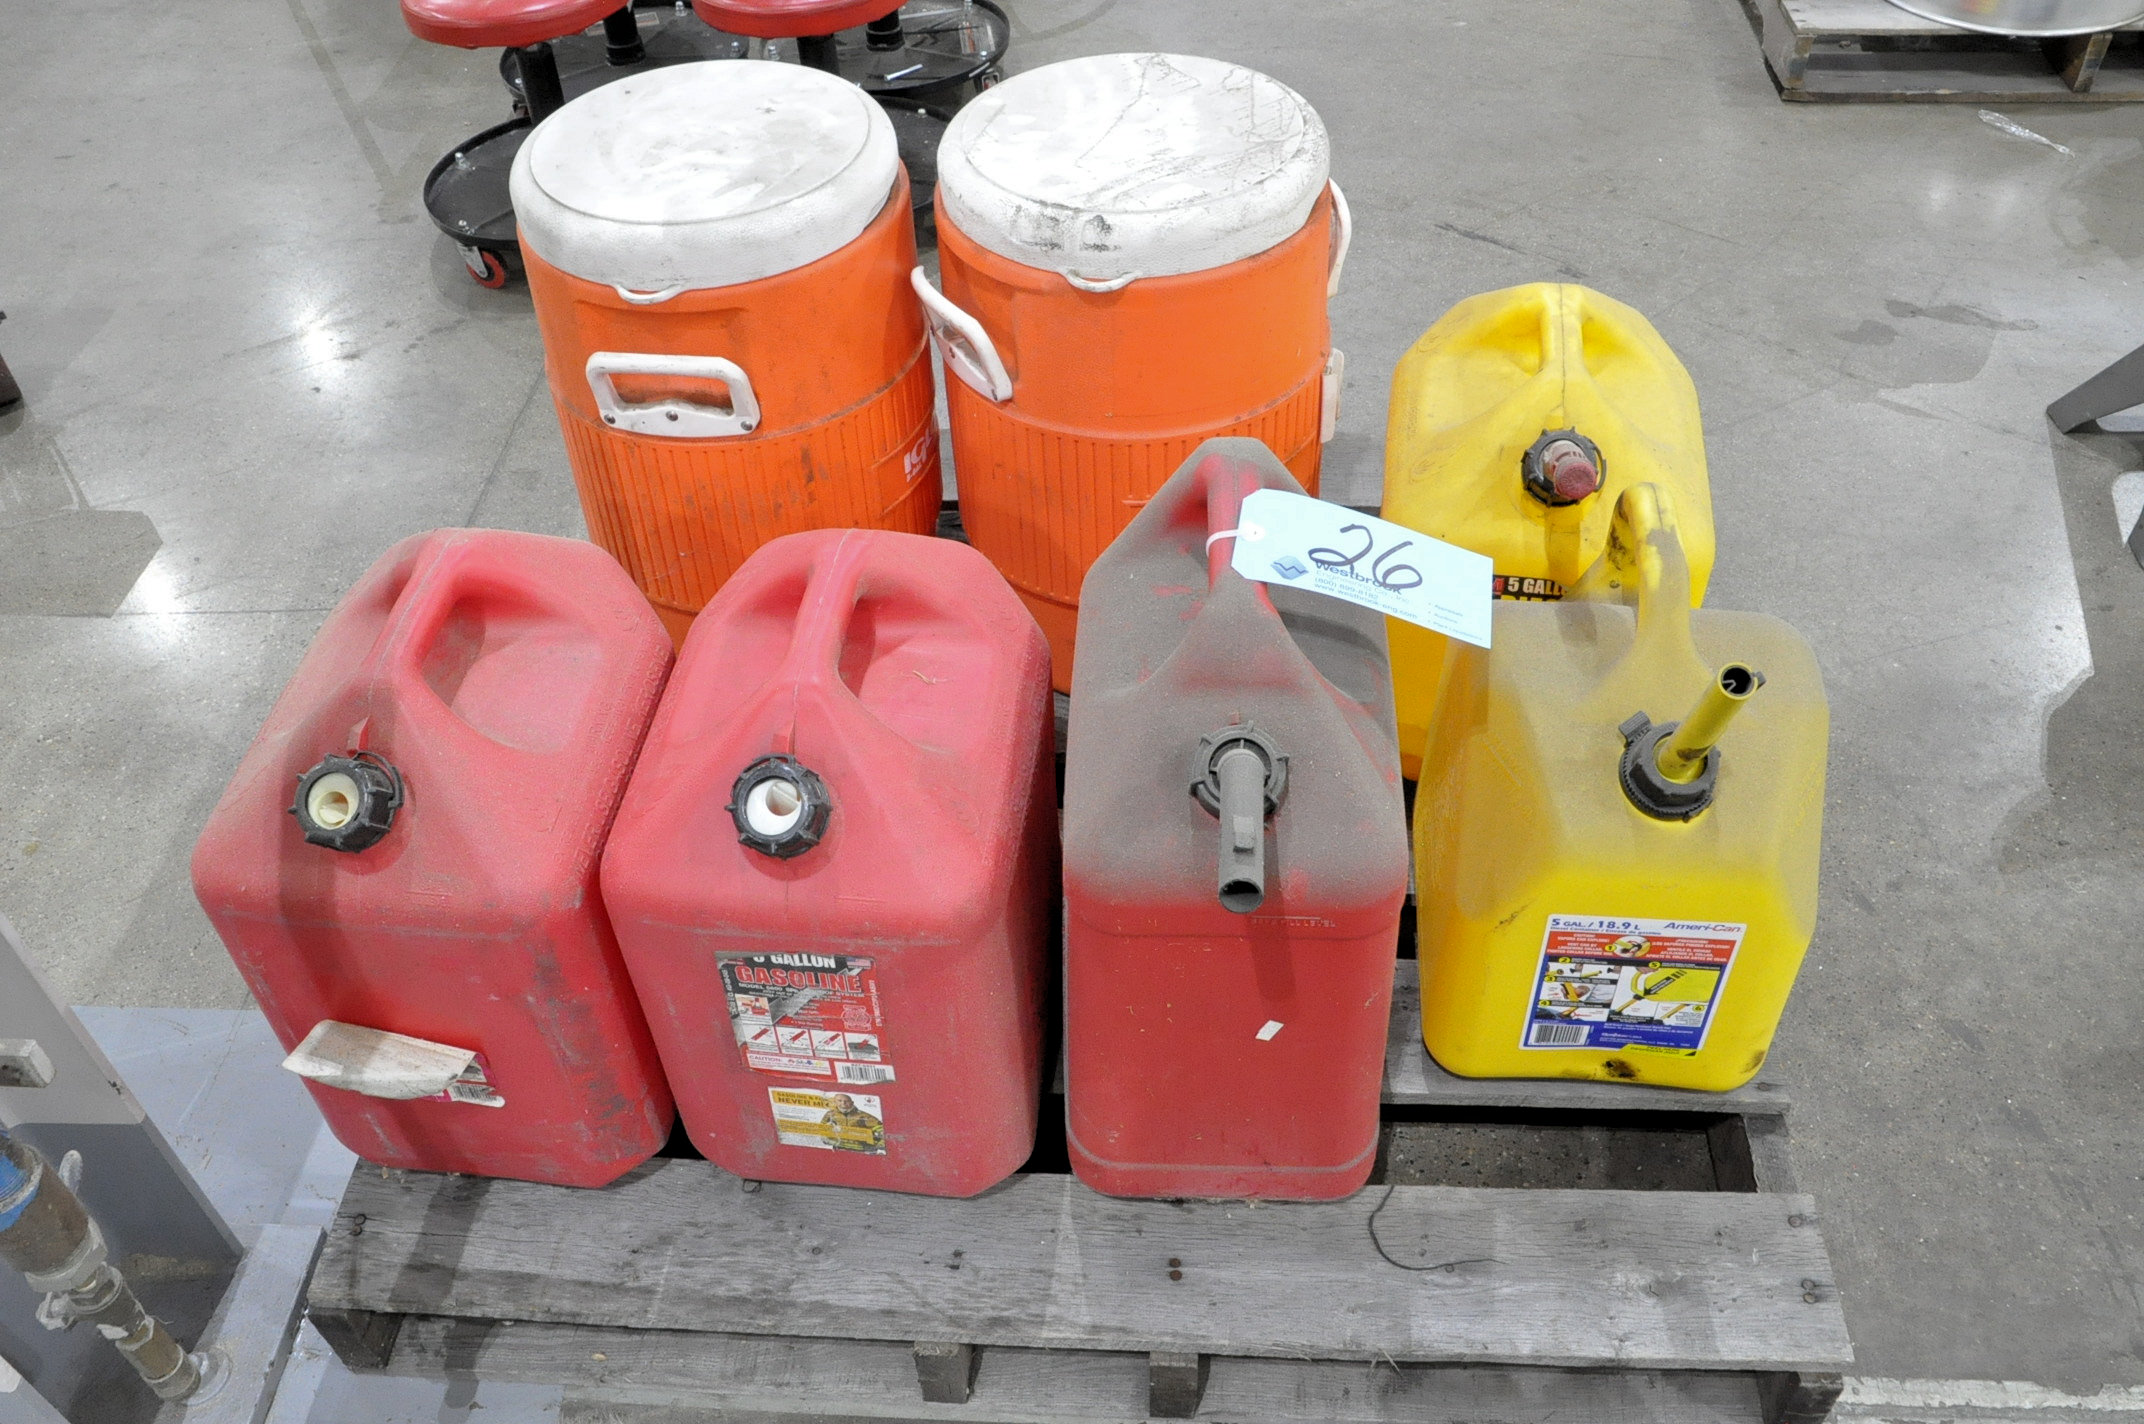 Lot-(5) Fuel Cans and (2) Drink Coolers on (1) Pallet